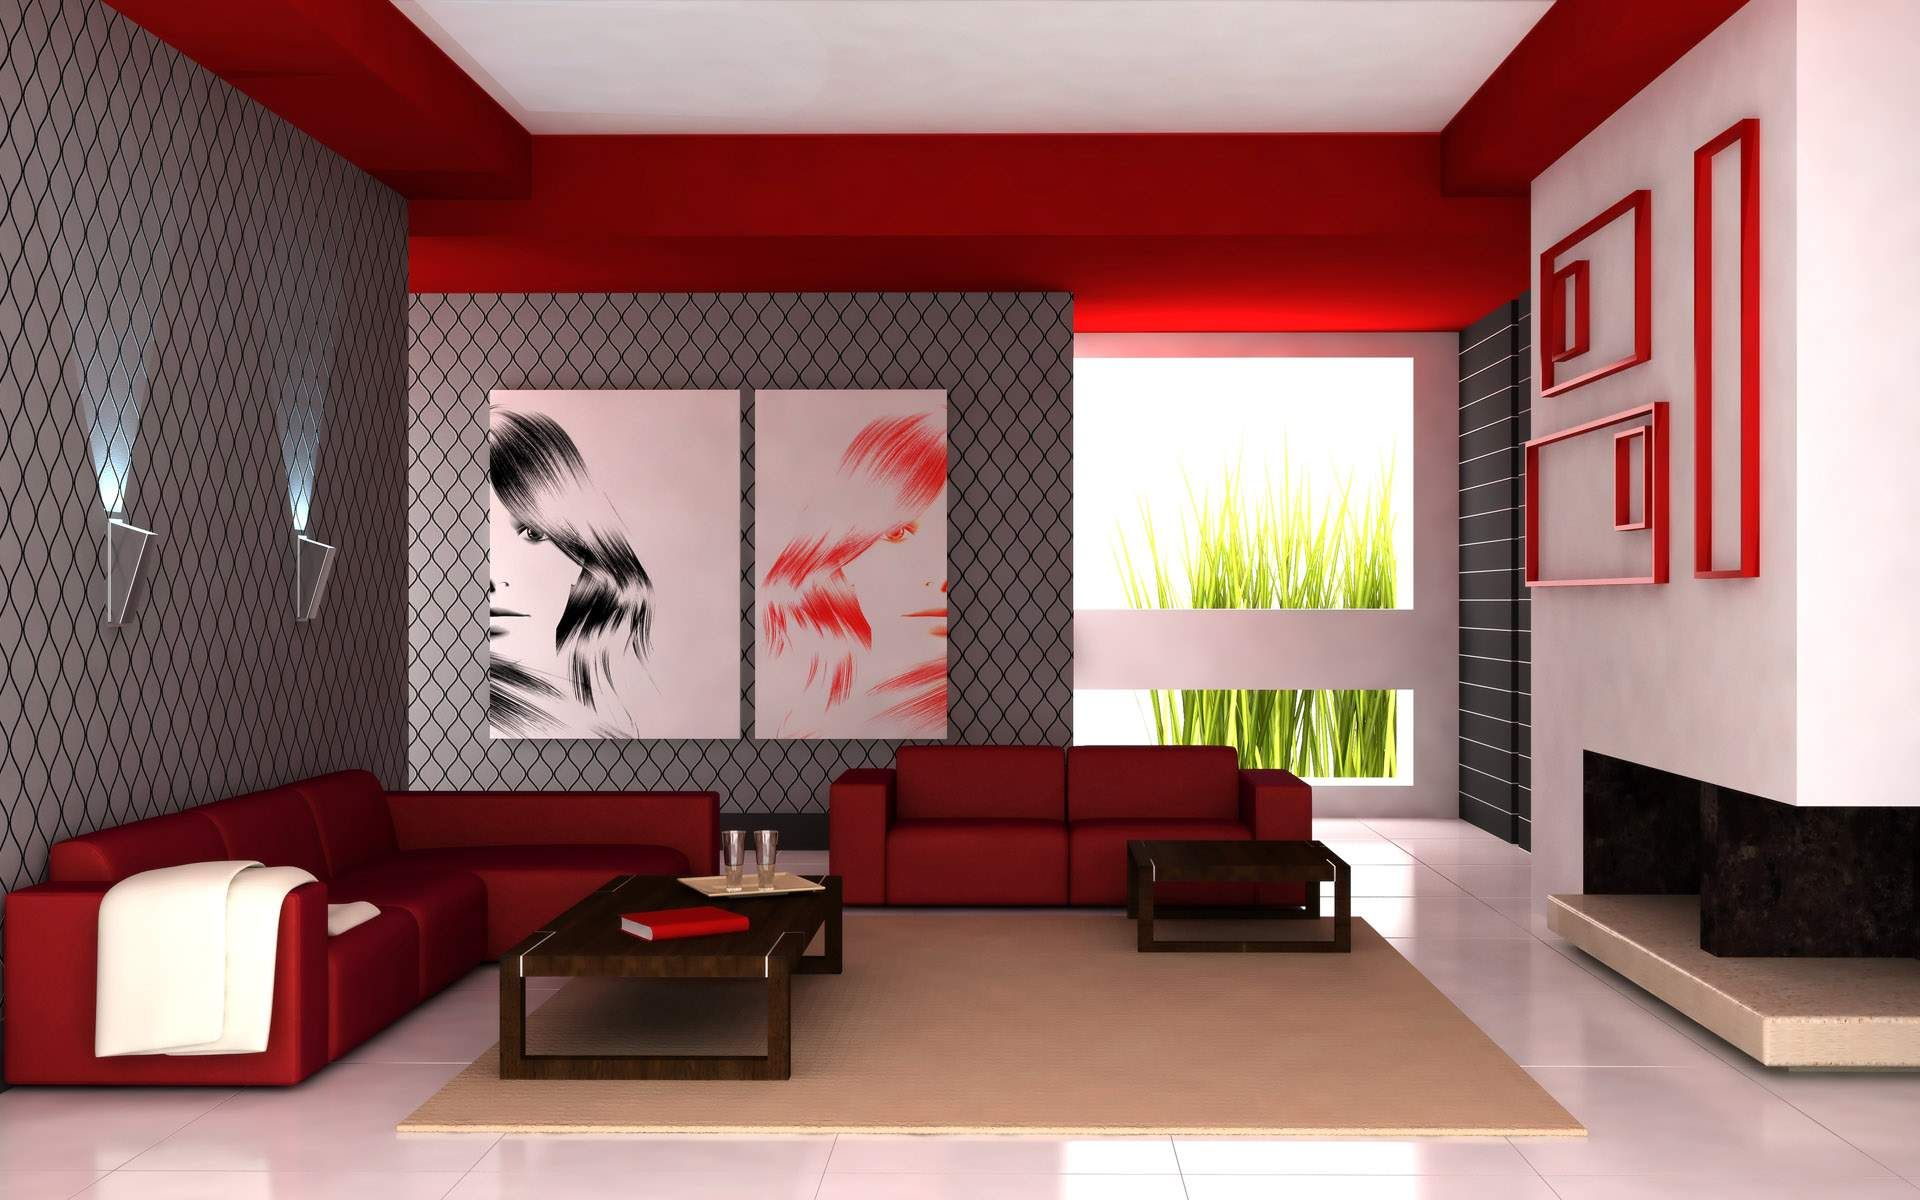 Living Room Ideas And Colors cool living room interior with flashy red color - stylendesigns